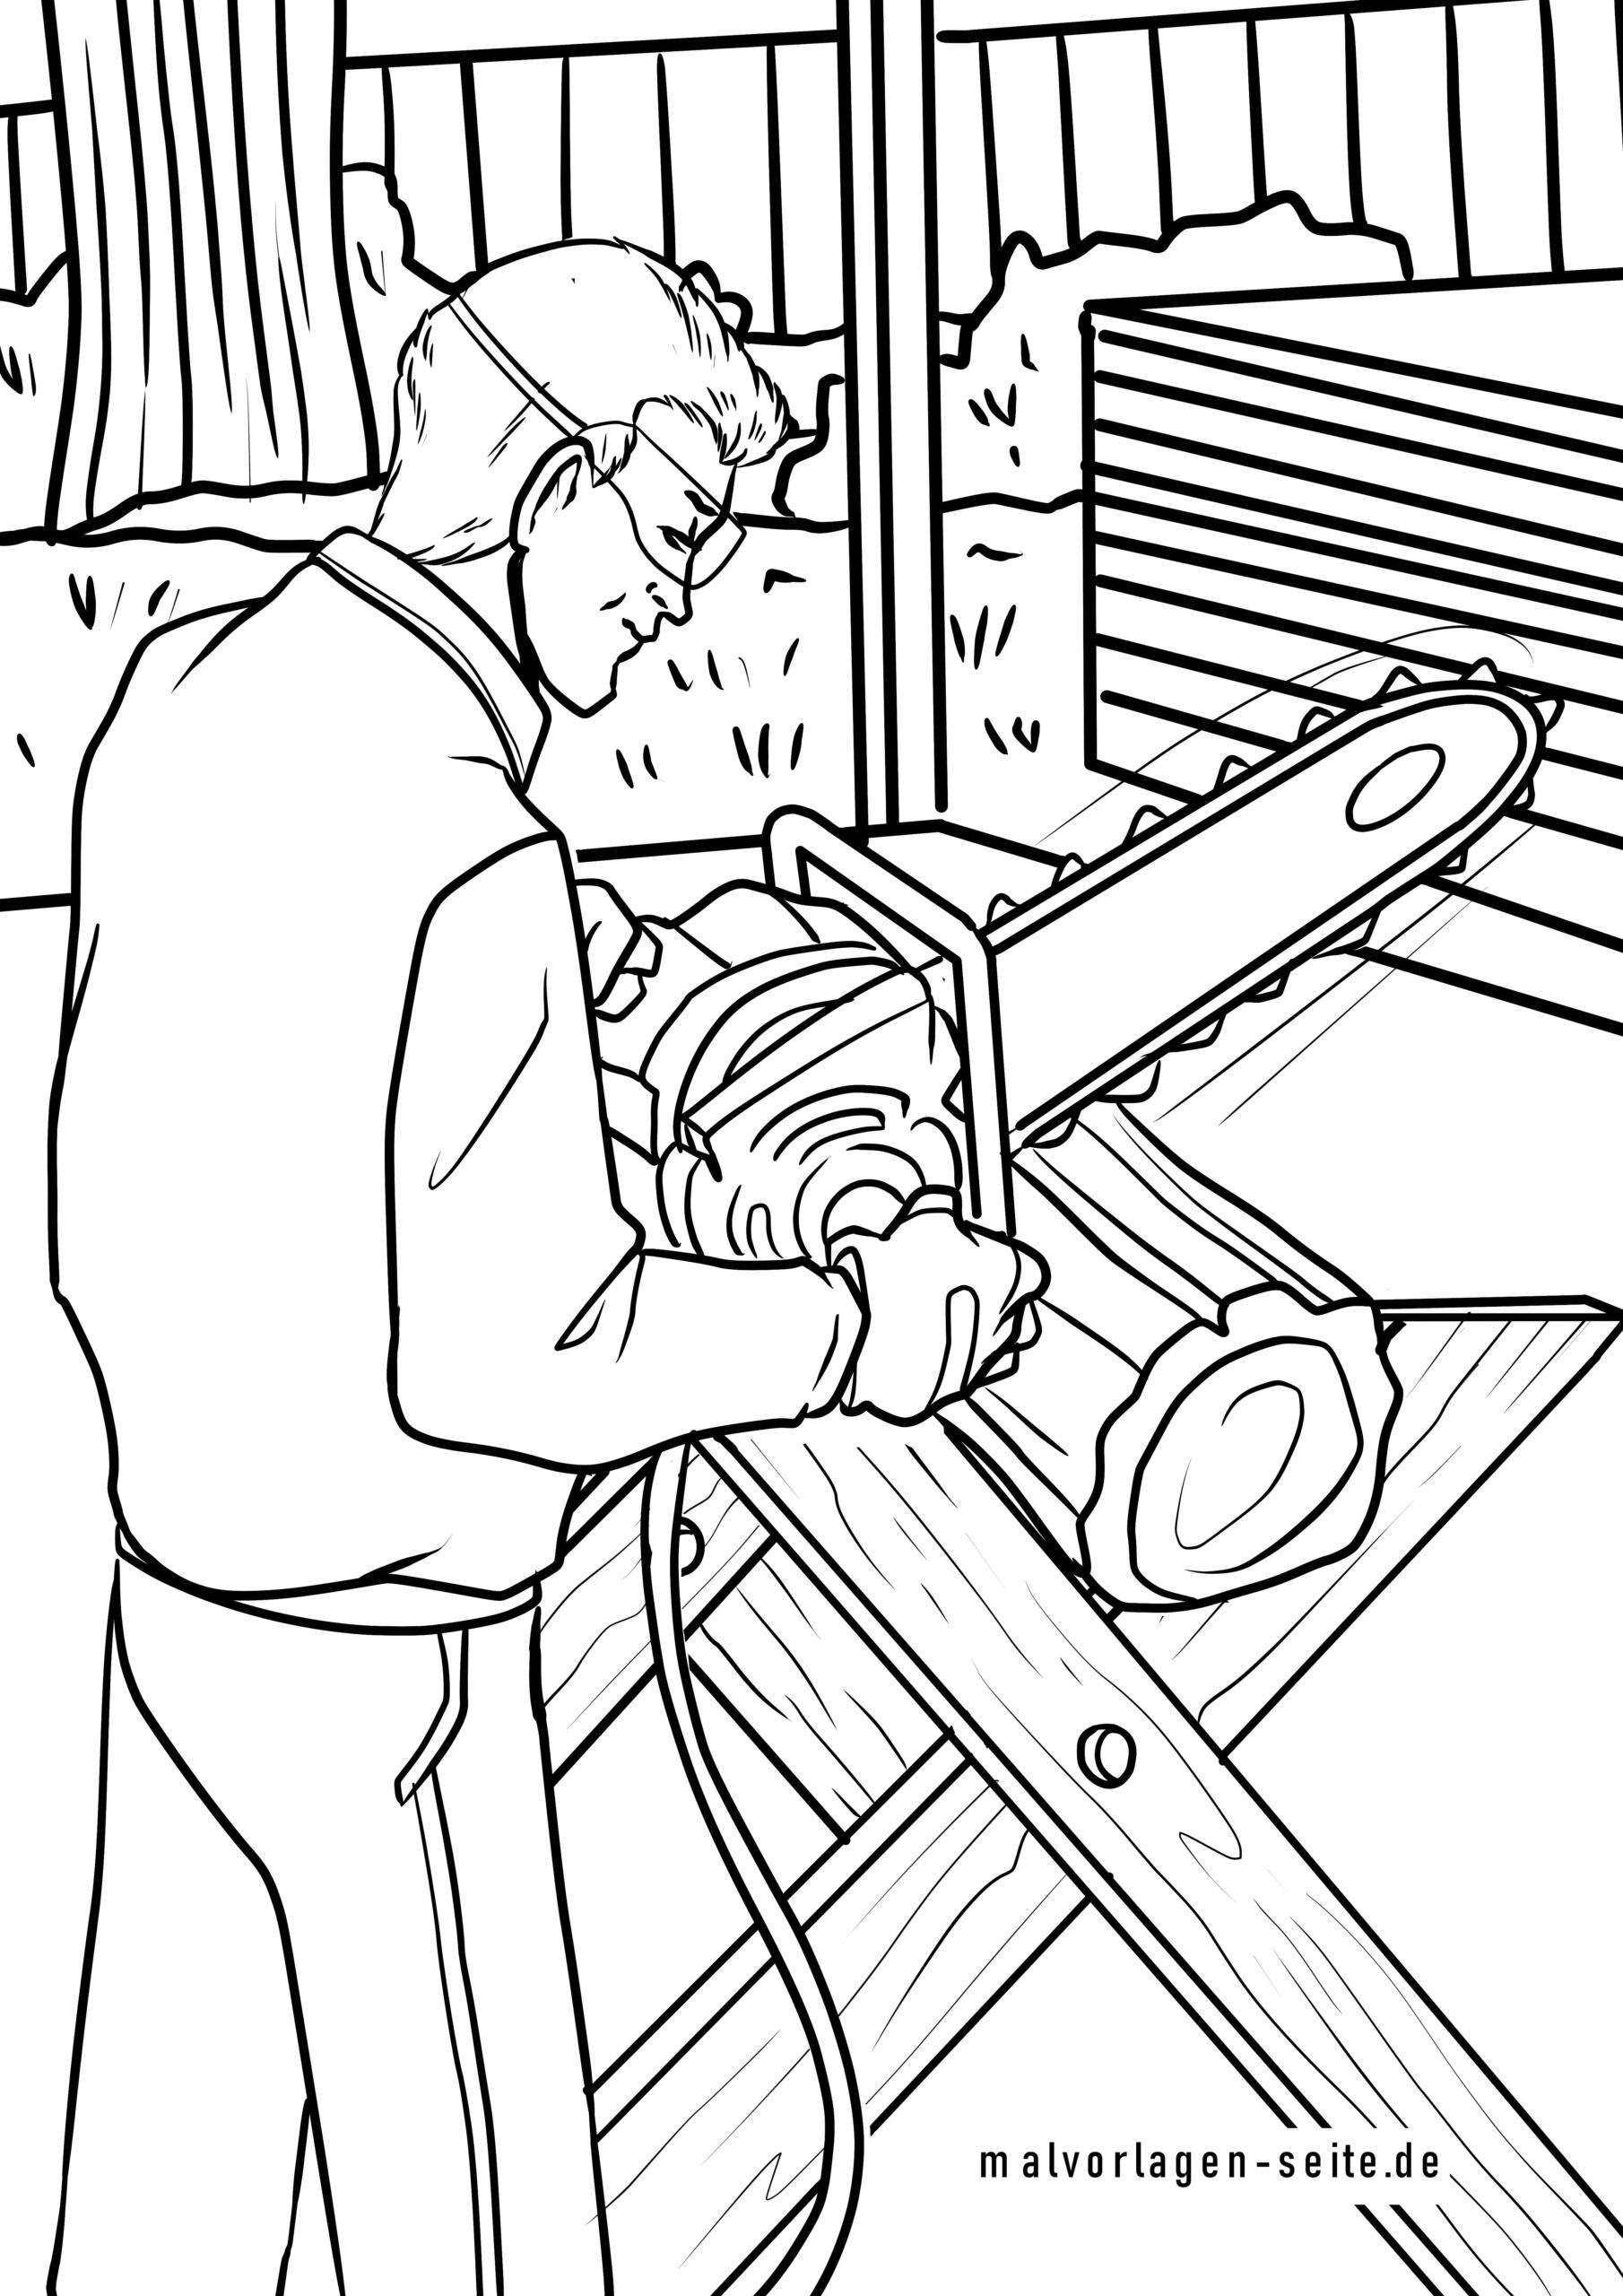 Coloring page man with chainsaw